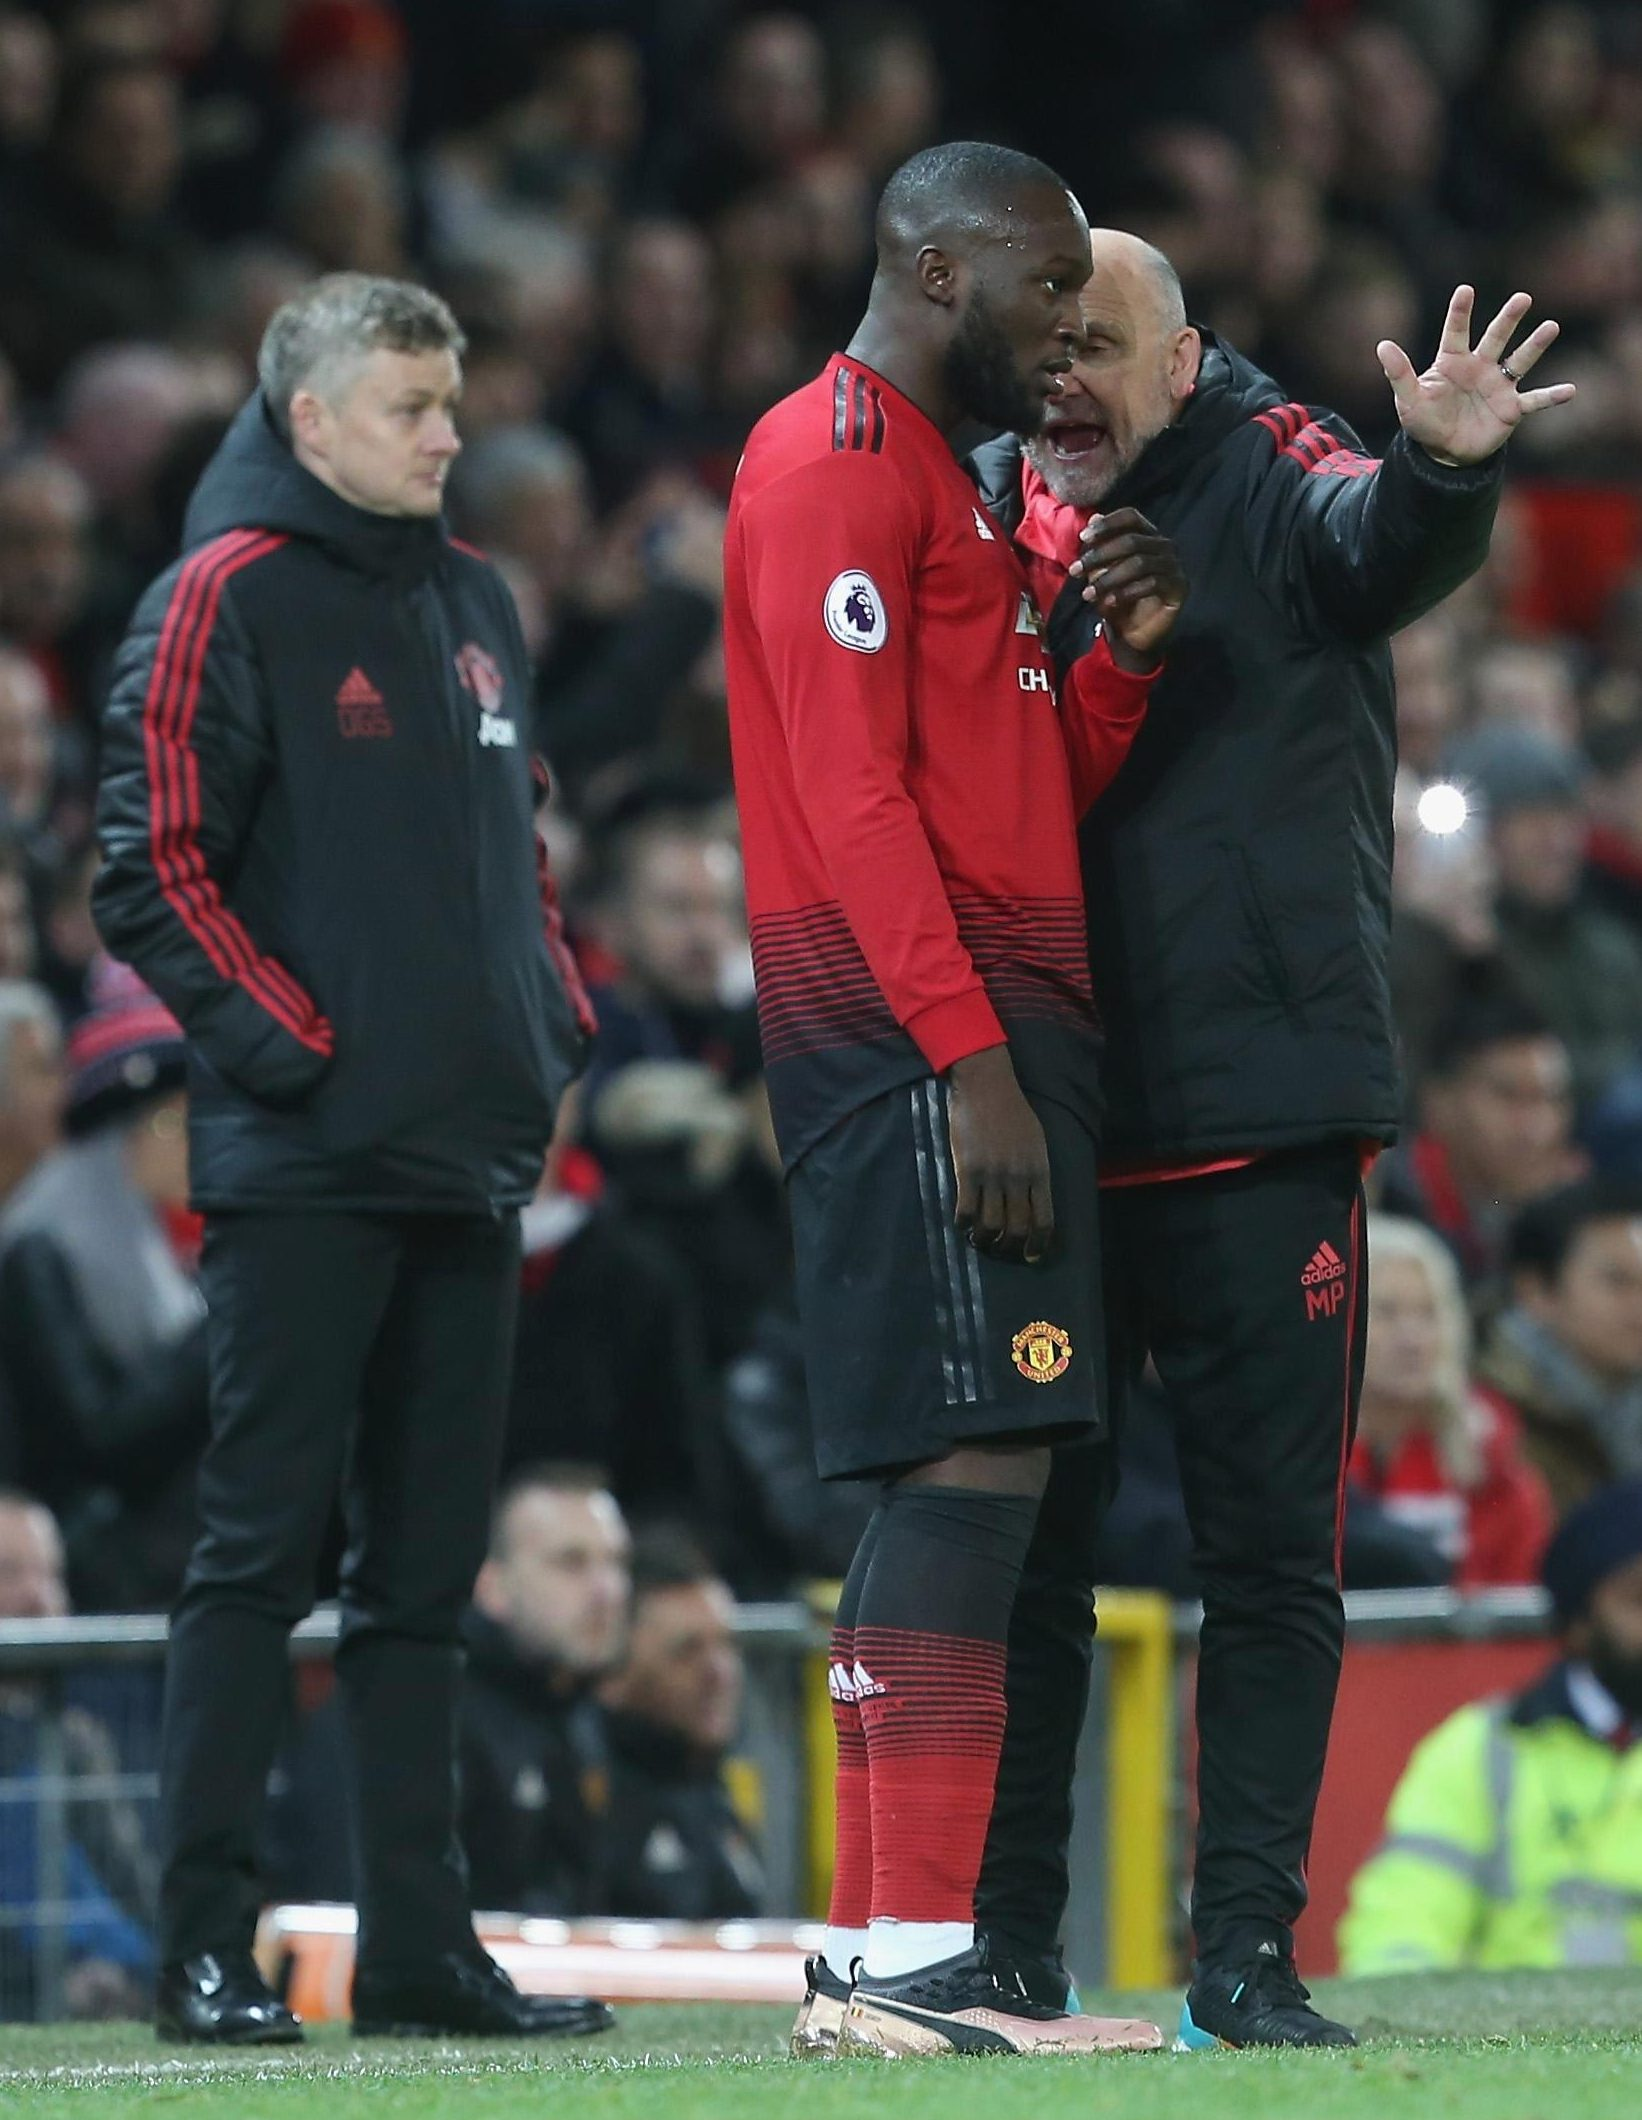 Lukaku has benefited from Solskjaer and Phelan's approach- he has bagged thhree goals since the new management took over